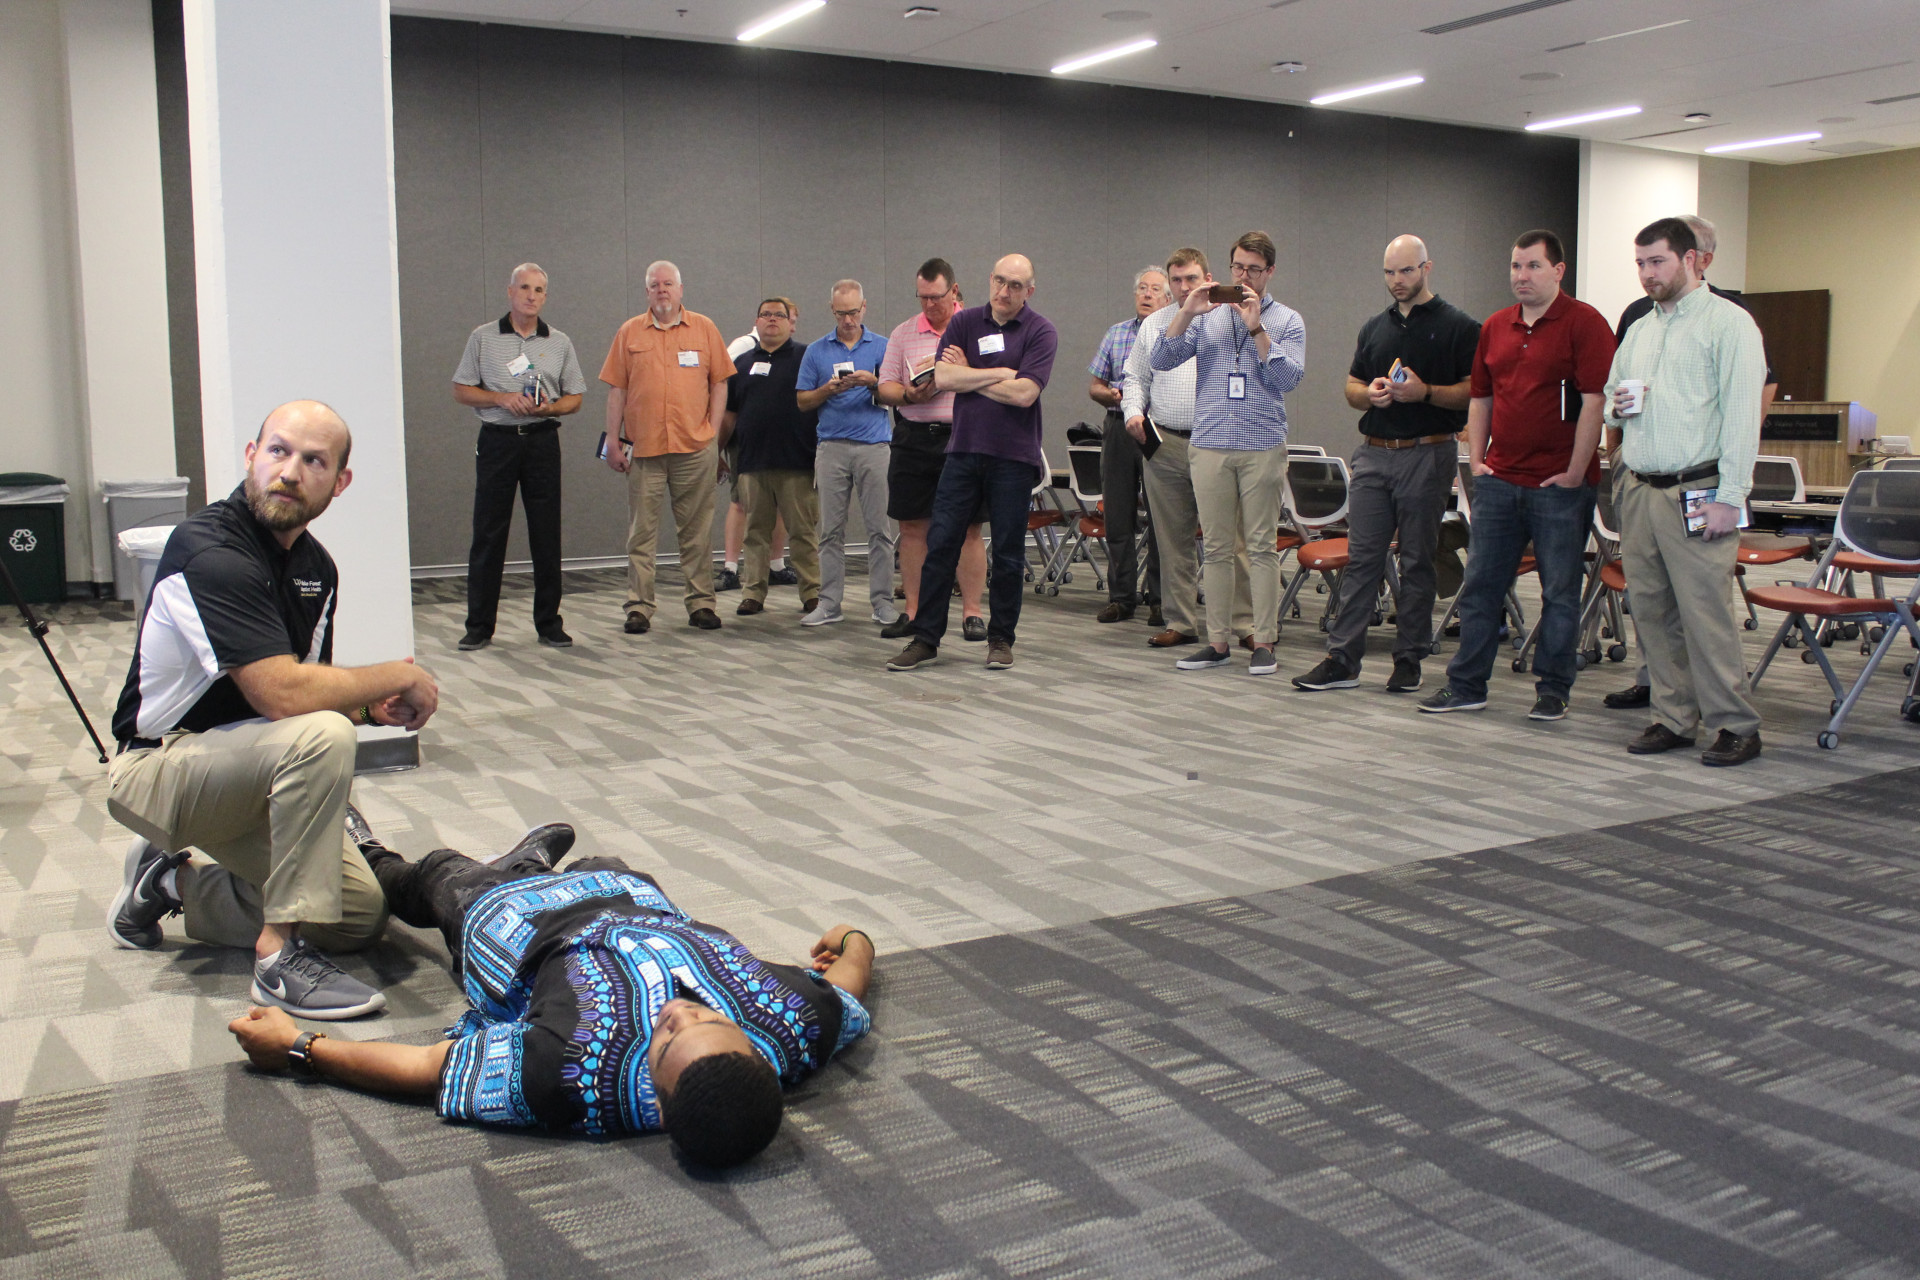 Wake Forest assistant athletic trainer Niles Fleet demonstrates protocol for knee injuries at the Sports Medicine Summit on June 24, 2018, at Wake Forest University School of Medicine